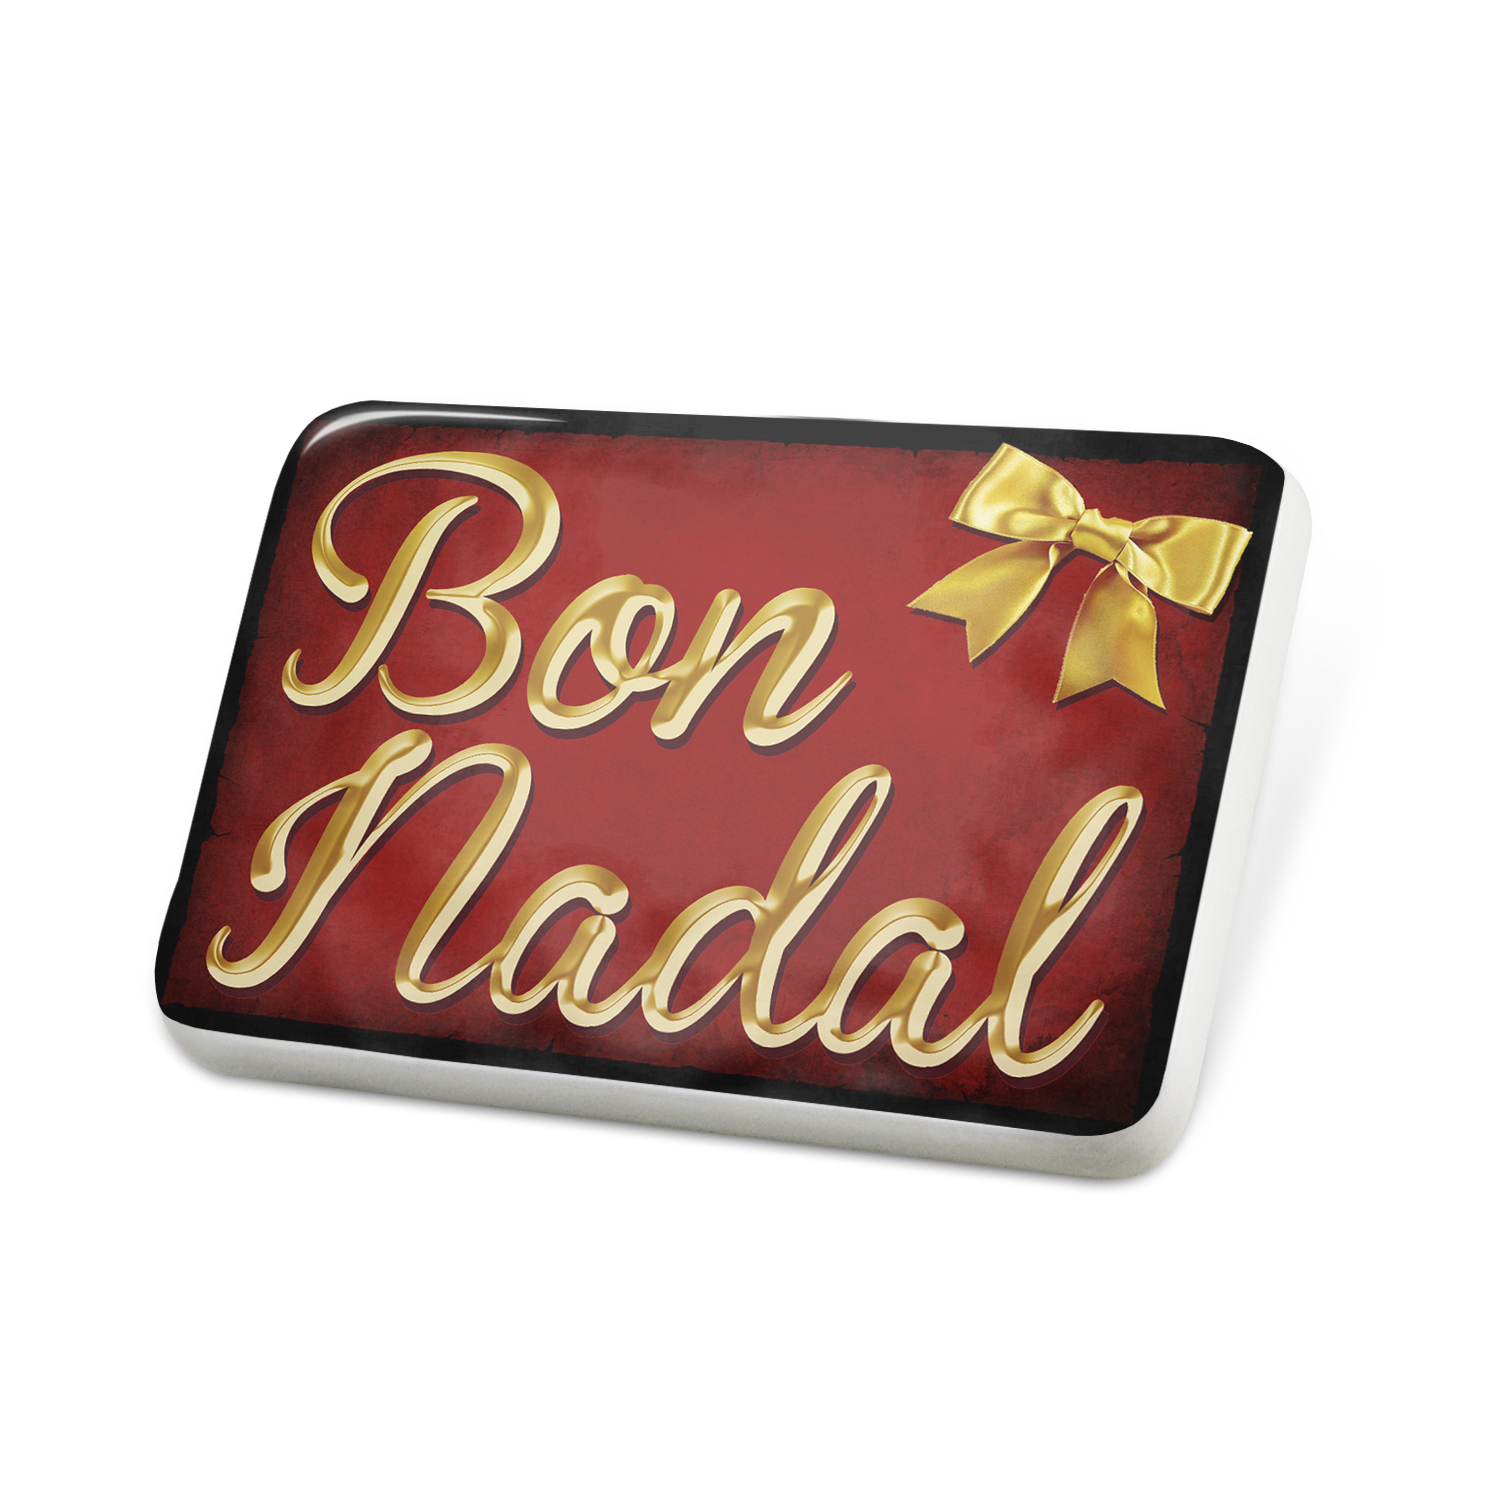 Porcelein Pin Merry Christmas in Catalan from Andorra, Spain Lapel Badge – NEONBLOND